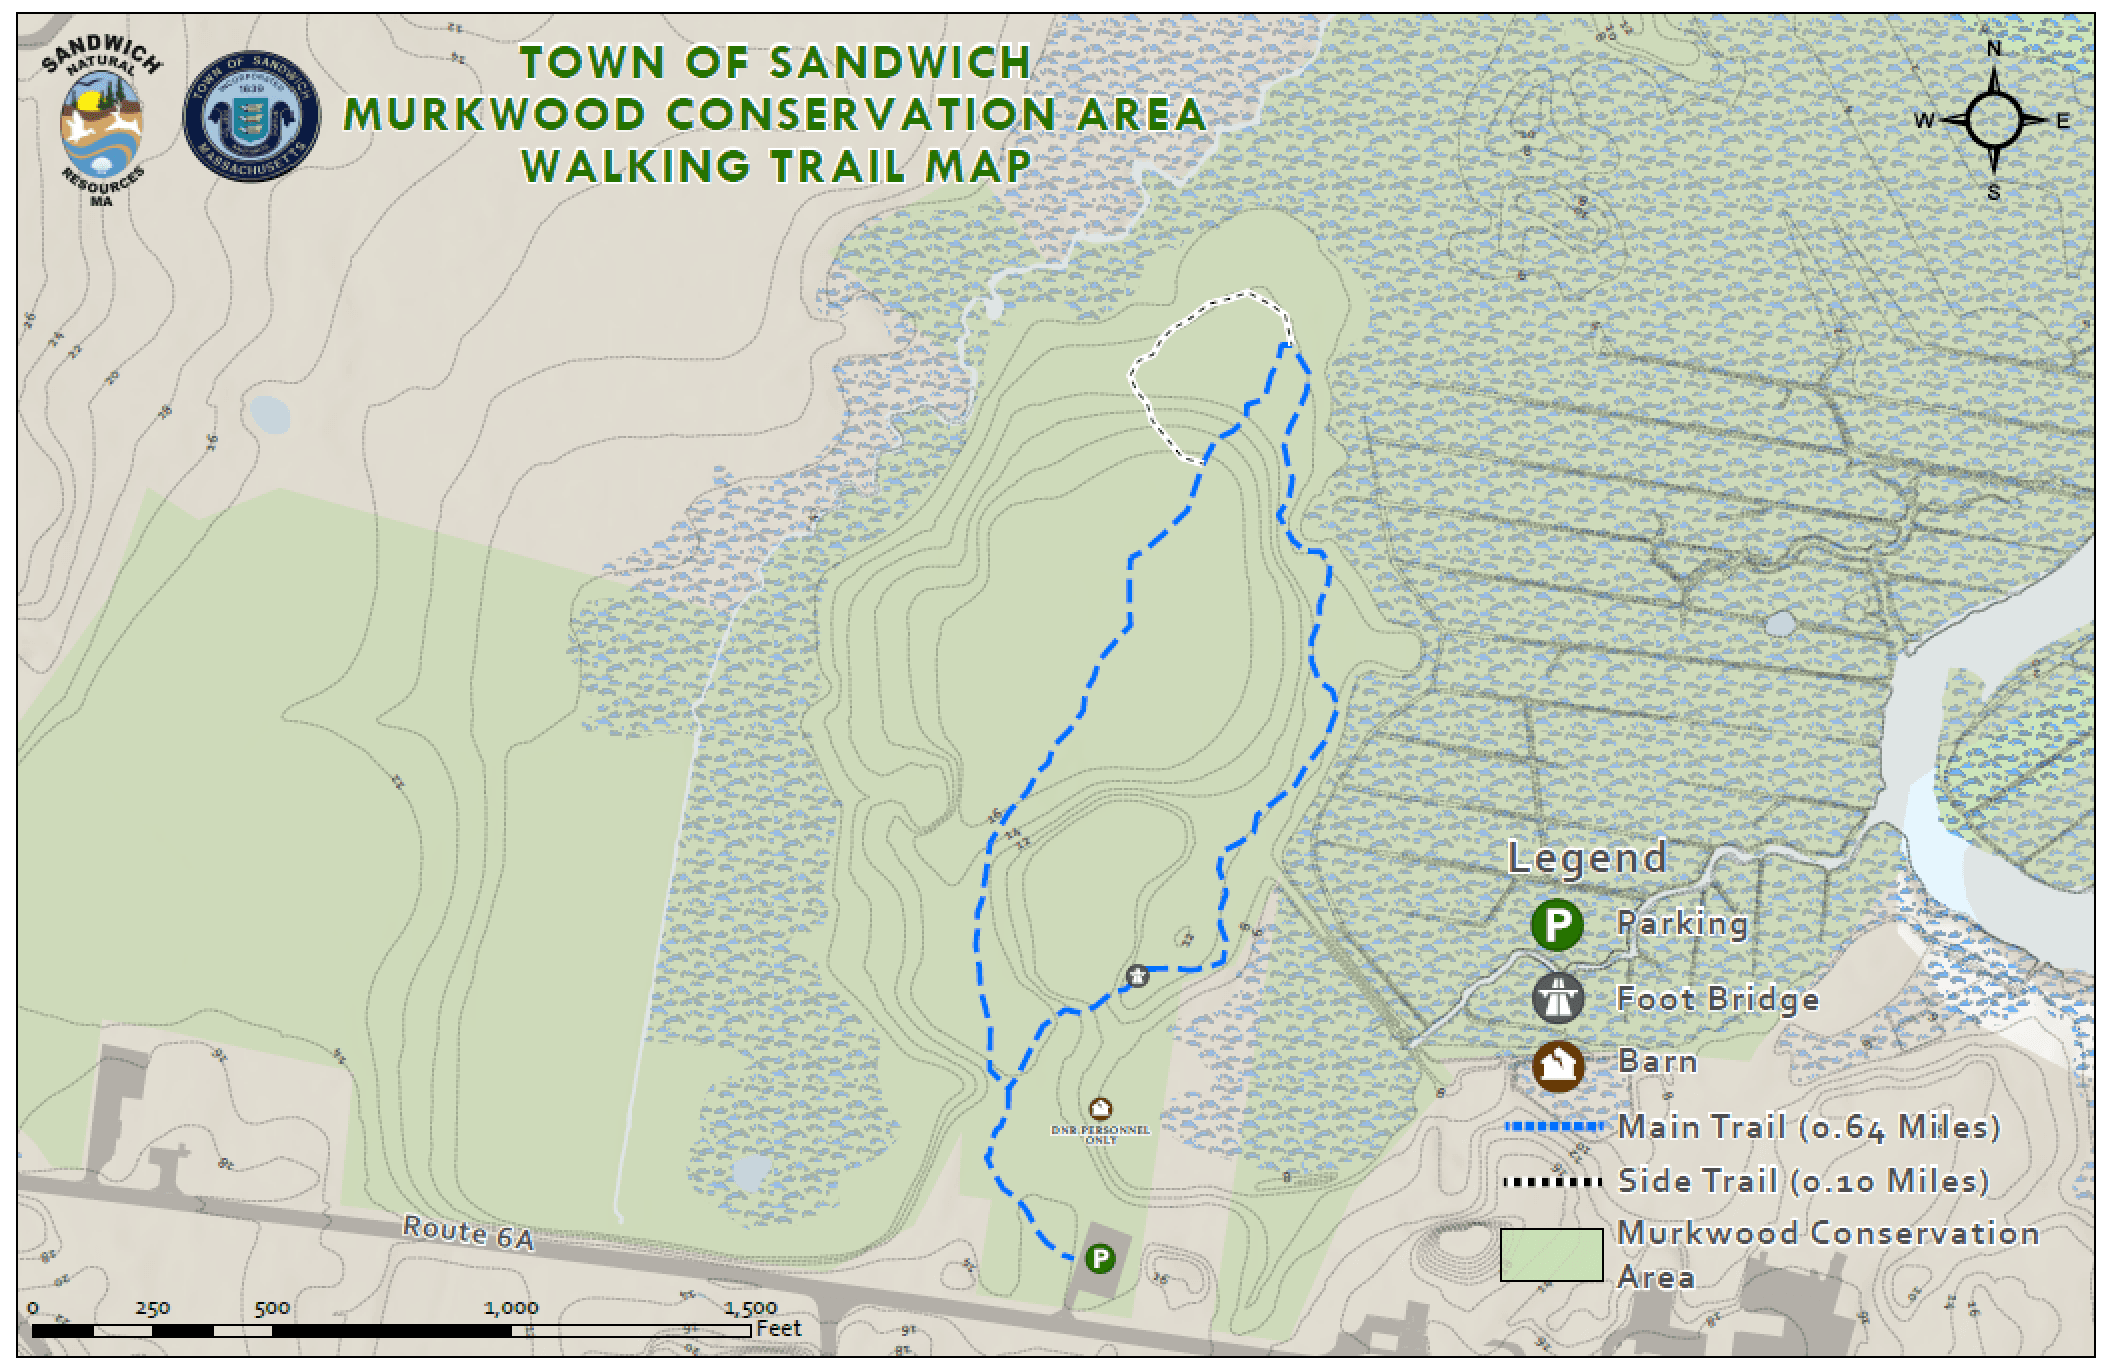 Murkwood Conservation Area Trail Map